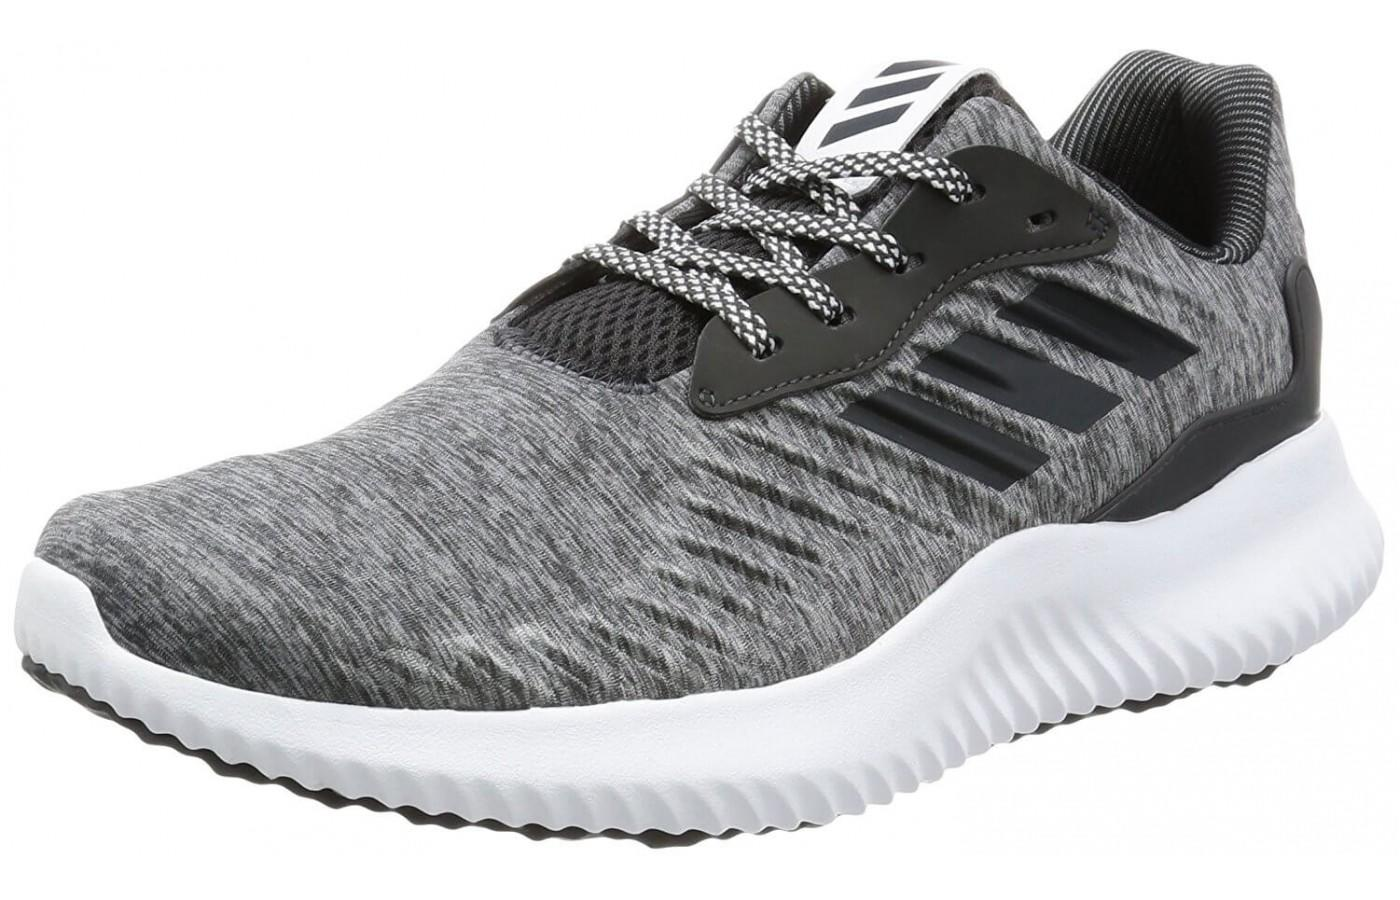 8edad12da720cf Adidas Alphabounce RC Review - Buy or Not in Apr 2019